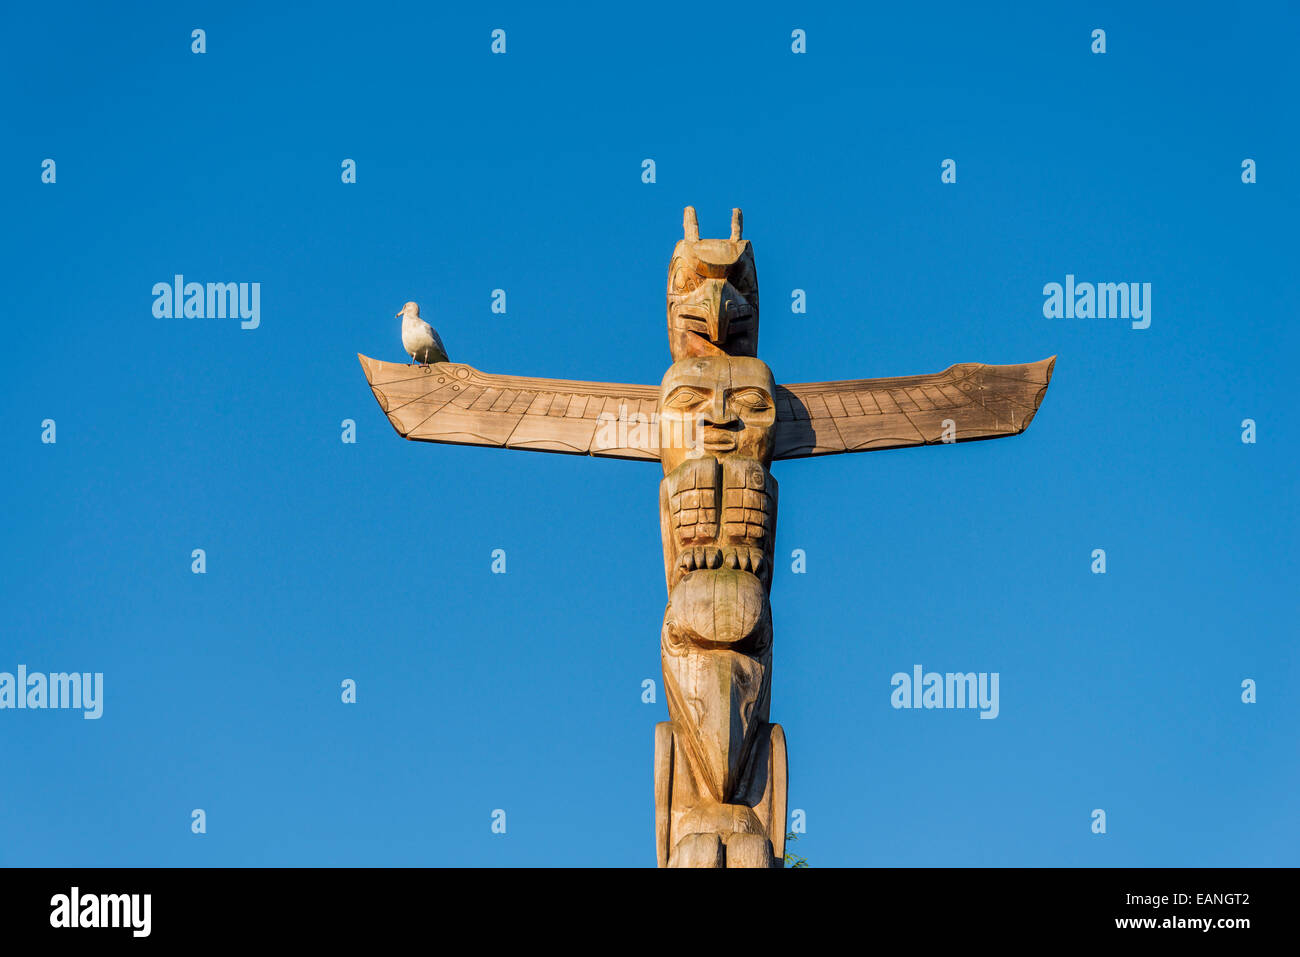 Rose Cole Yelton Memorial totem pole, Stanley Park, Vancouver, British Columbia, Canada, - Stock Image